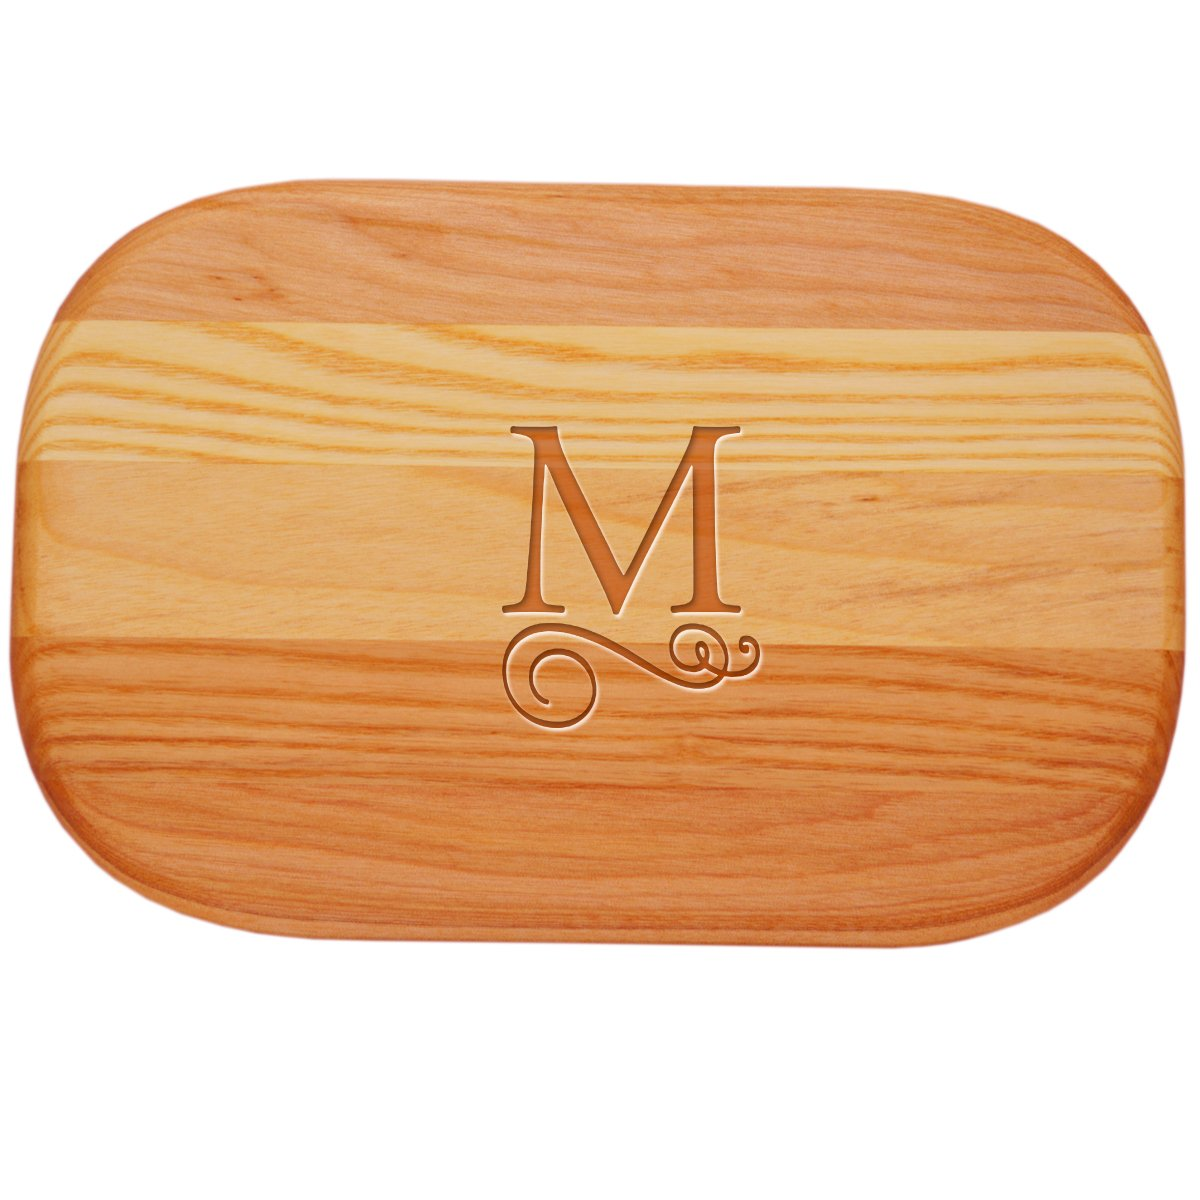 Carved Solutions 735255446258  Small Everyday Board with Etched Flourish initial M.